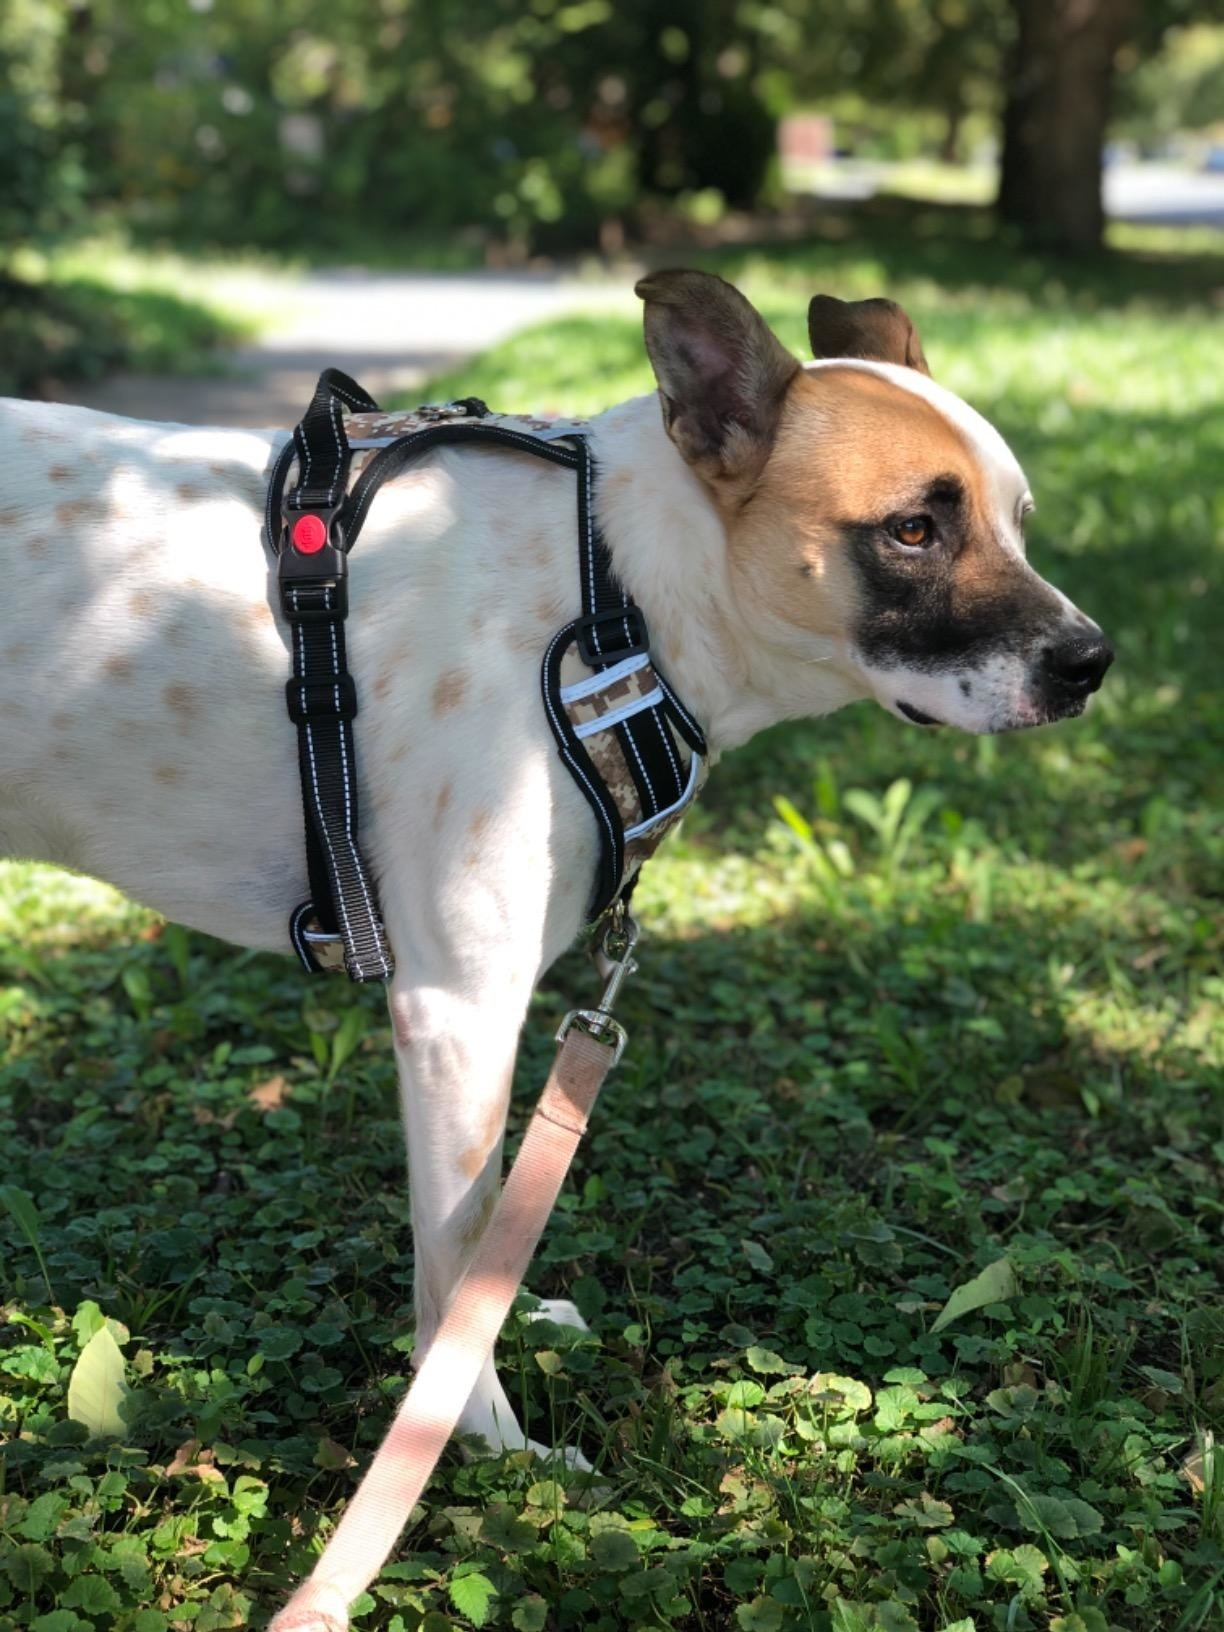 a reviewer's dog wearing the harness which has rings at the back and chest to connect with the leash